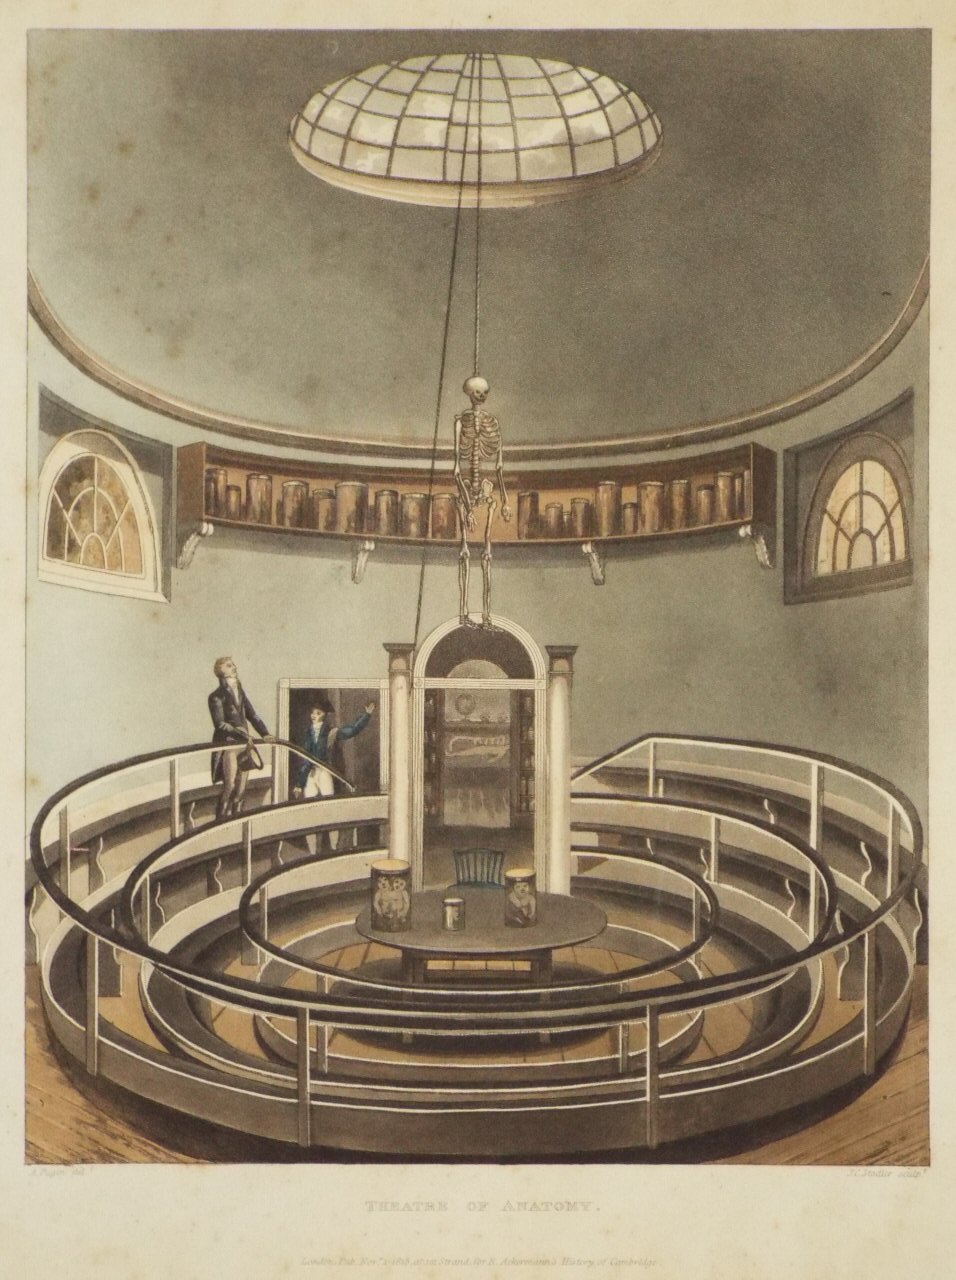 Aquatint - Theatre of Anatomy. - Stadler